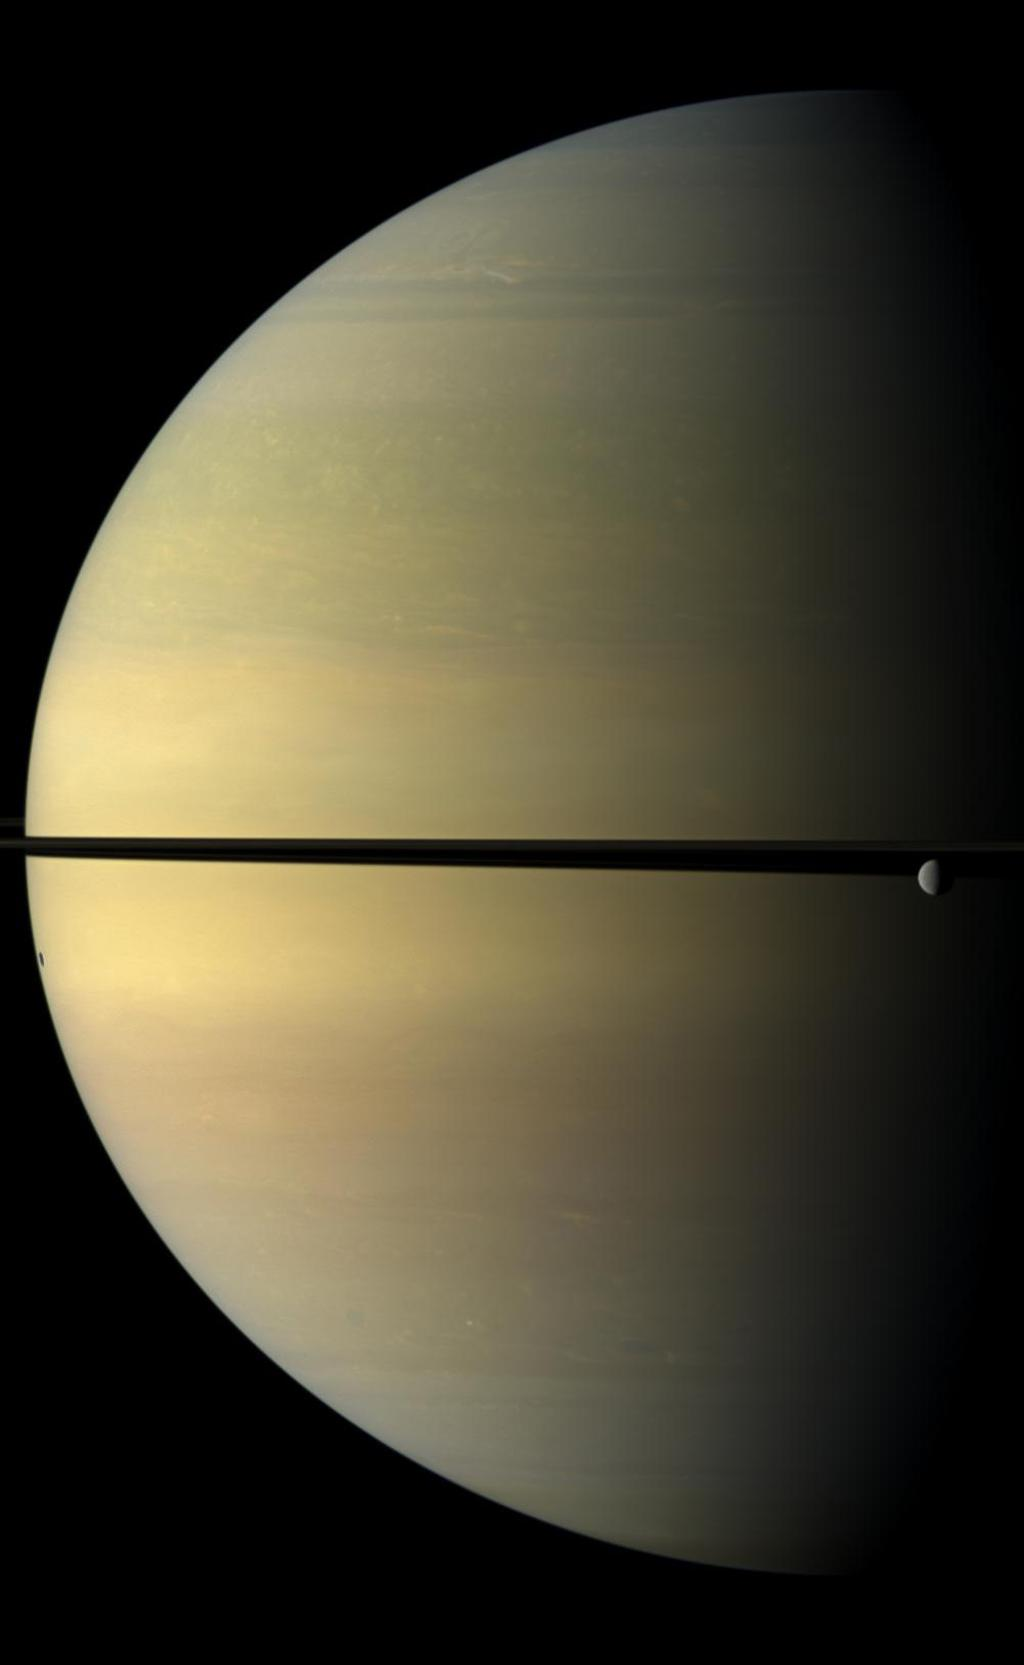 Saturn, stately and resplendent in this natural color view taken by NASA's Cassini spacecraft, dwarfs the icy moon Rhea. Rhea orbits beyond the rings on the right of the image. Tethys shadow is visible on the planet on the left of the image.